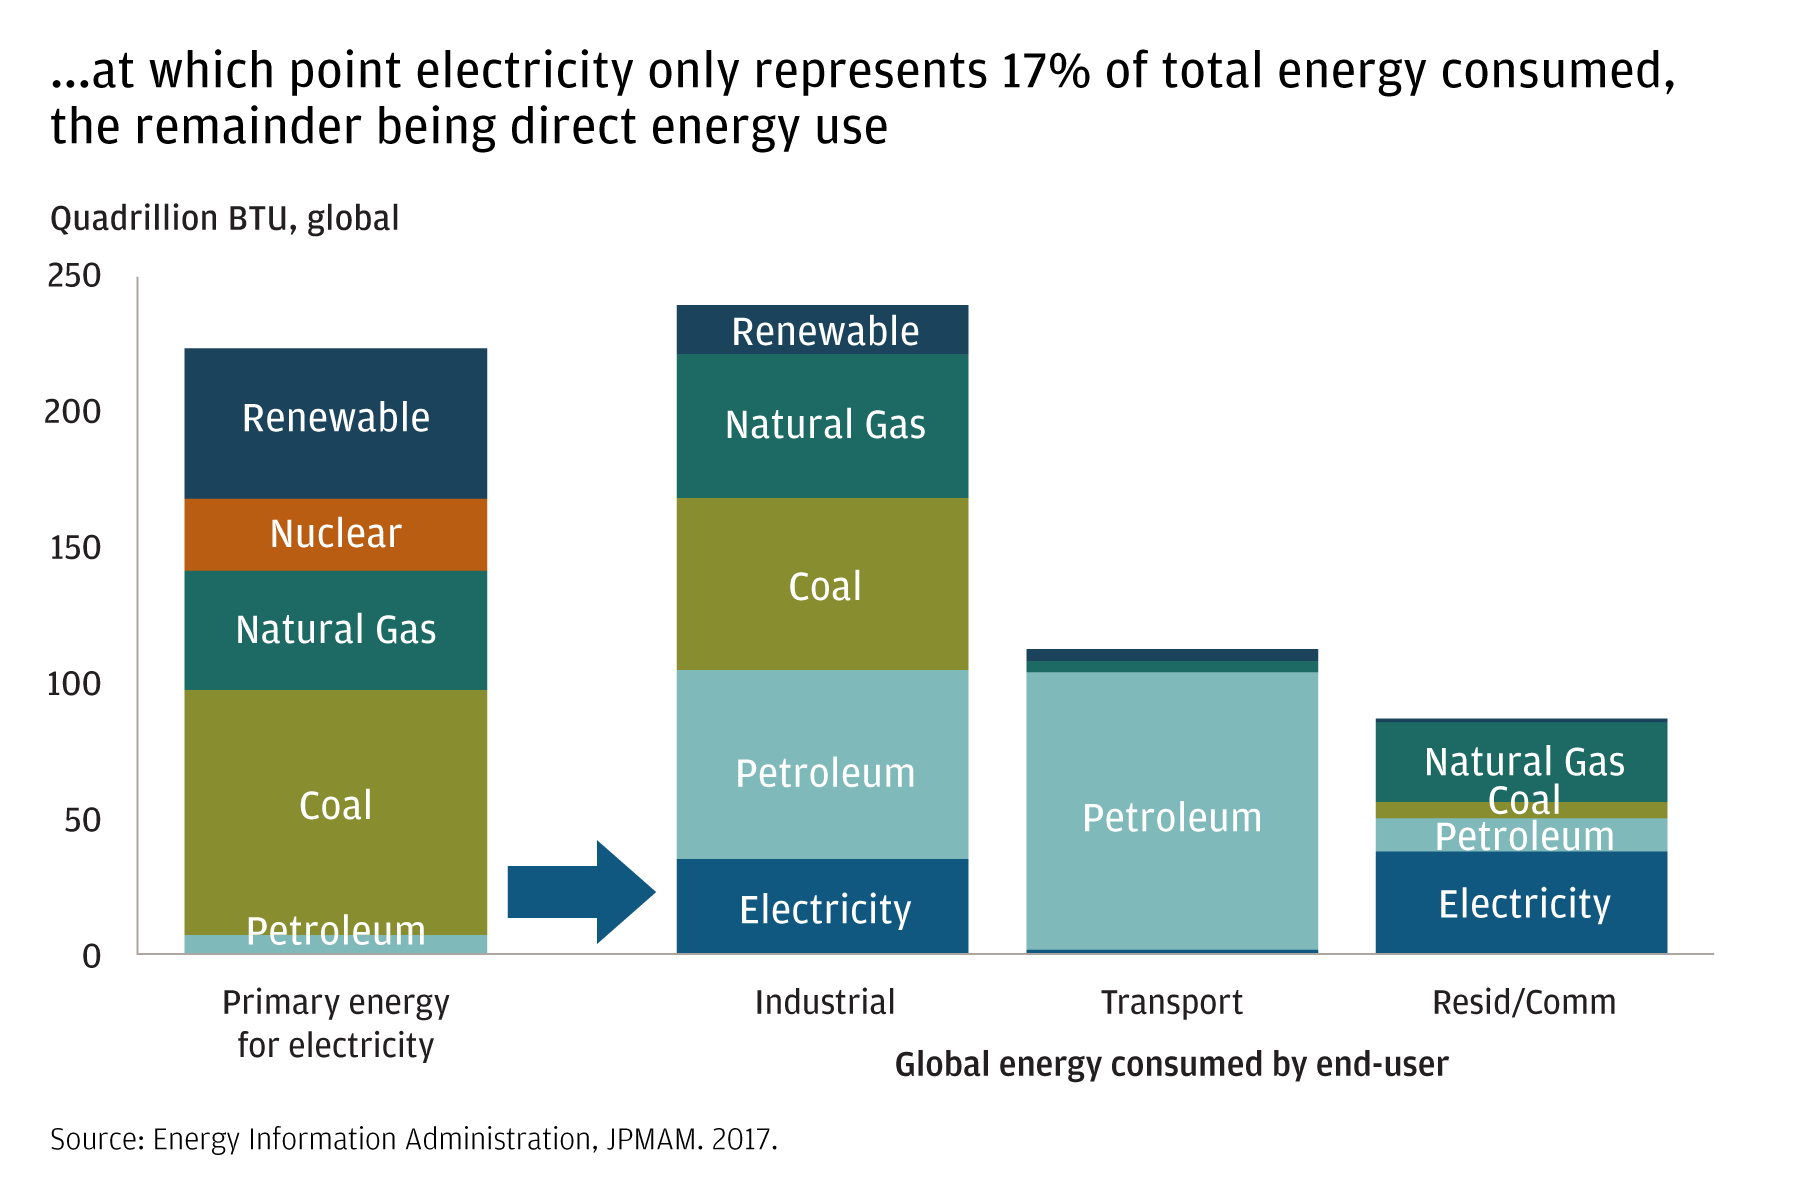 These charts show the sources of energy used by the industrial, transport and residential/consumer sectors. While industry uses natural gas, coal and petroleum in almost equal quantities, with electricity and renewables in lesser roles, the transport sector is almost completely dependent on petroleum at present. In the consumer/retail sector, the smallest of the three, electricity and natural gas are the primary energy sources, with coal and petroleum less important and renewables not yet a significant factor.